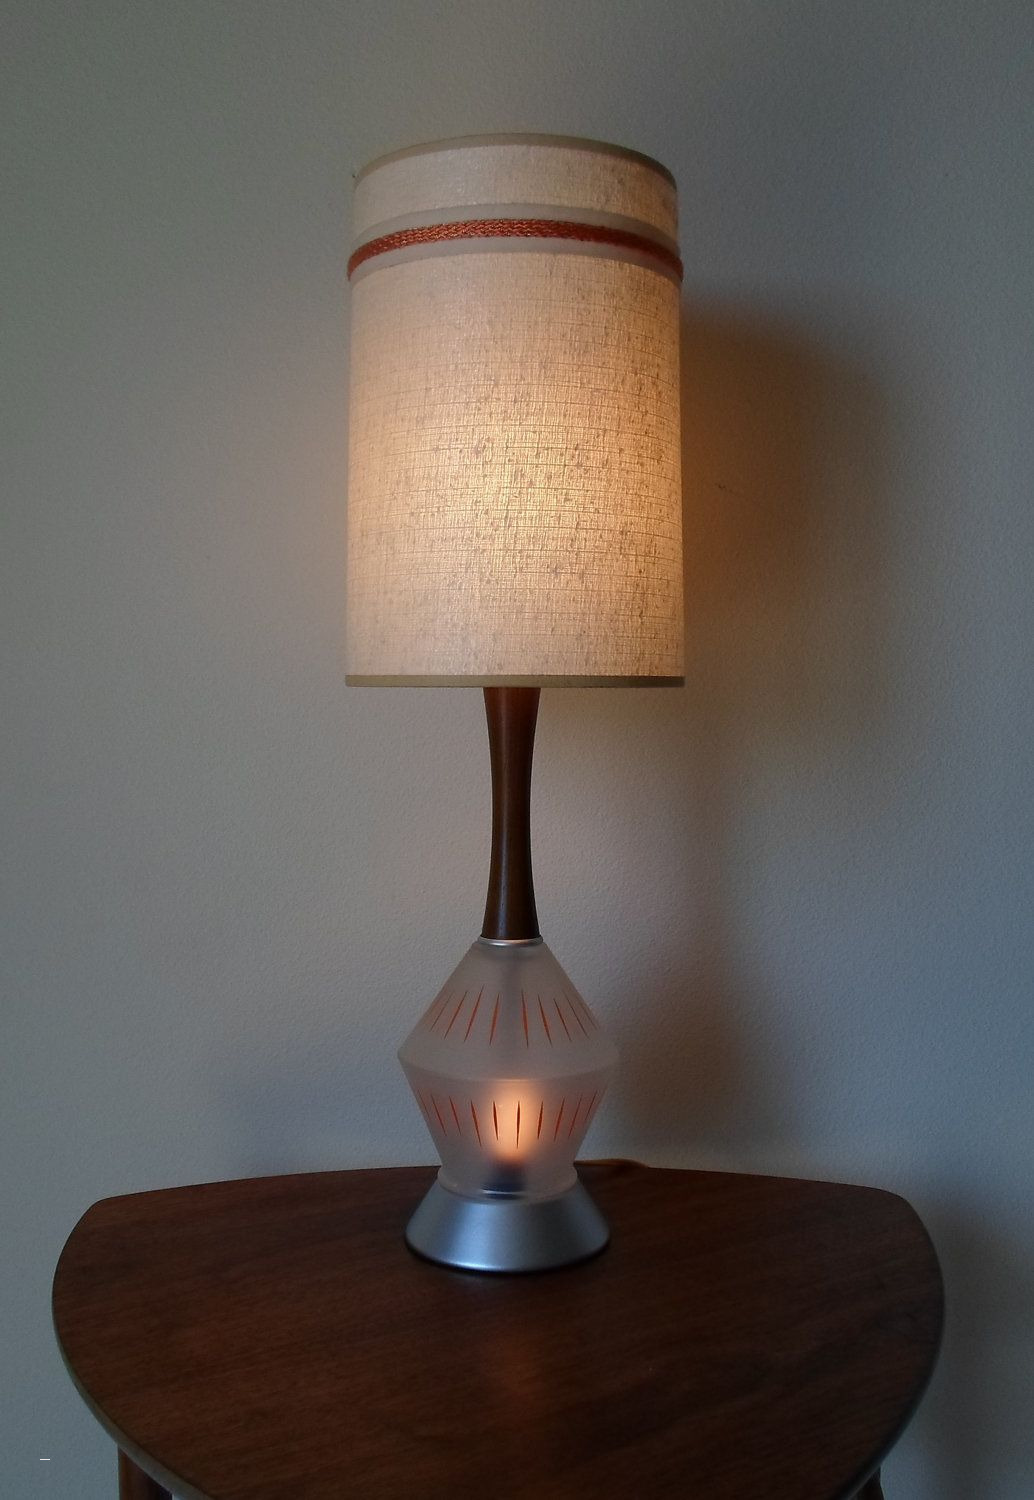 table lamp with nightlight base best vintage mid century modern replacement glass shades contemporary for floor lamps drum shade chandeliers frosted cylinder accent wood and end